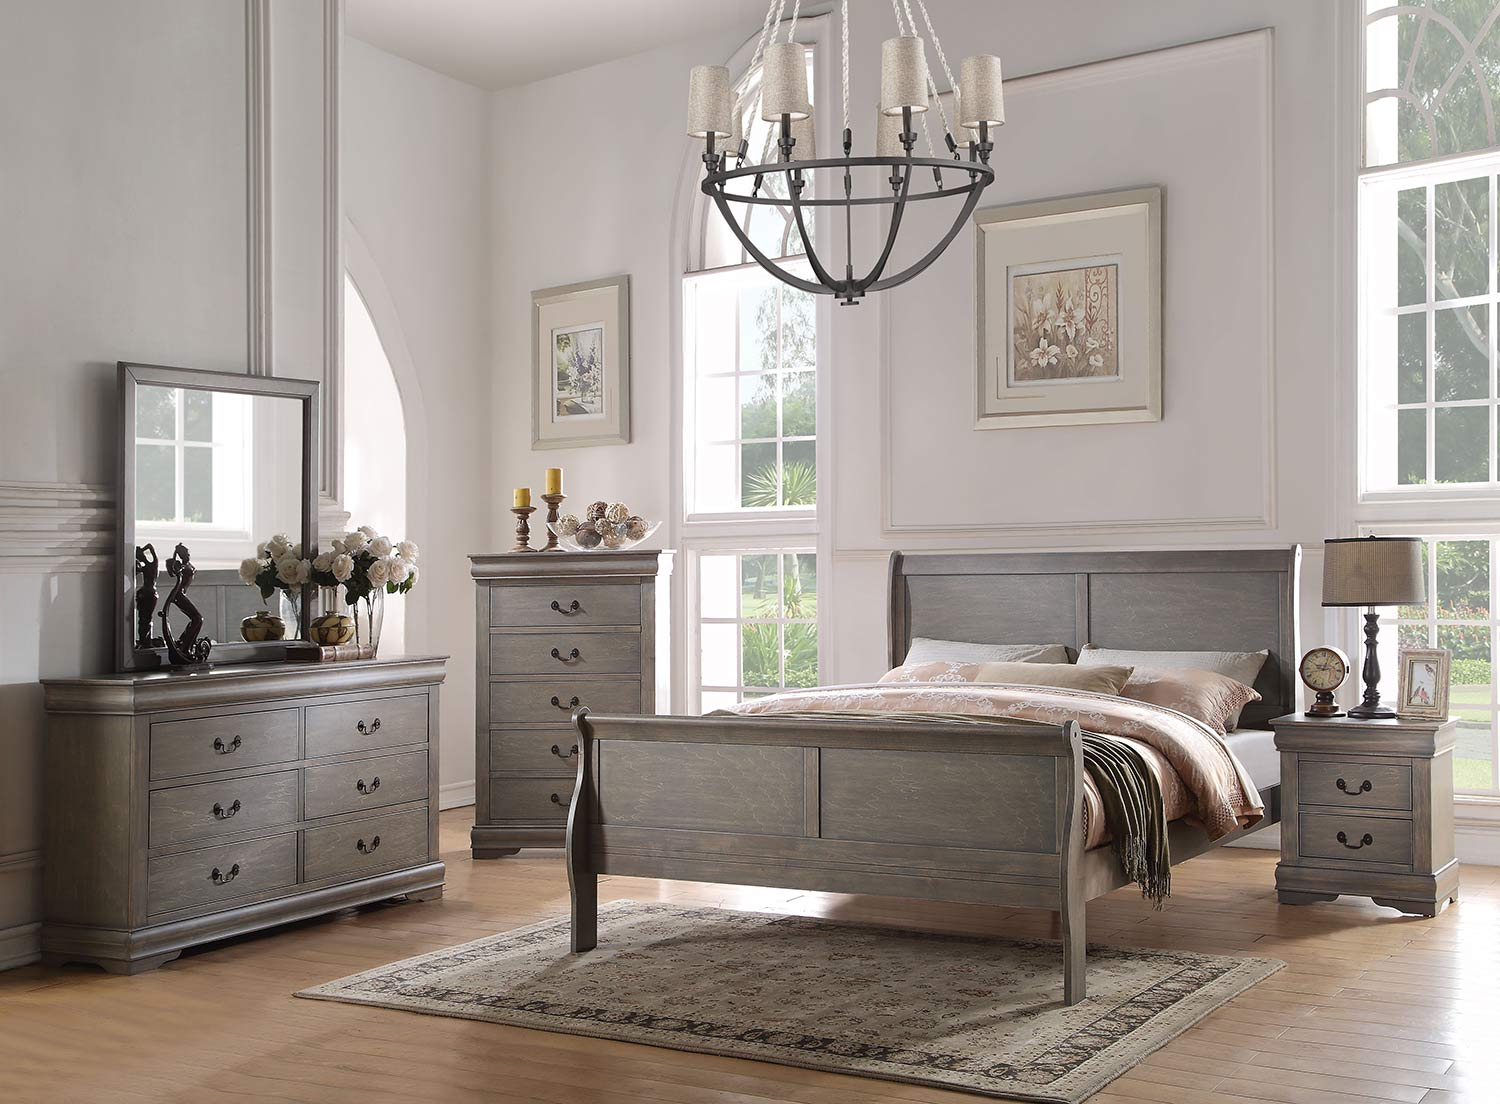 Acme Louis Philippe Bedroom Set - Antique Gray